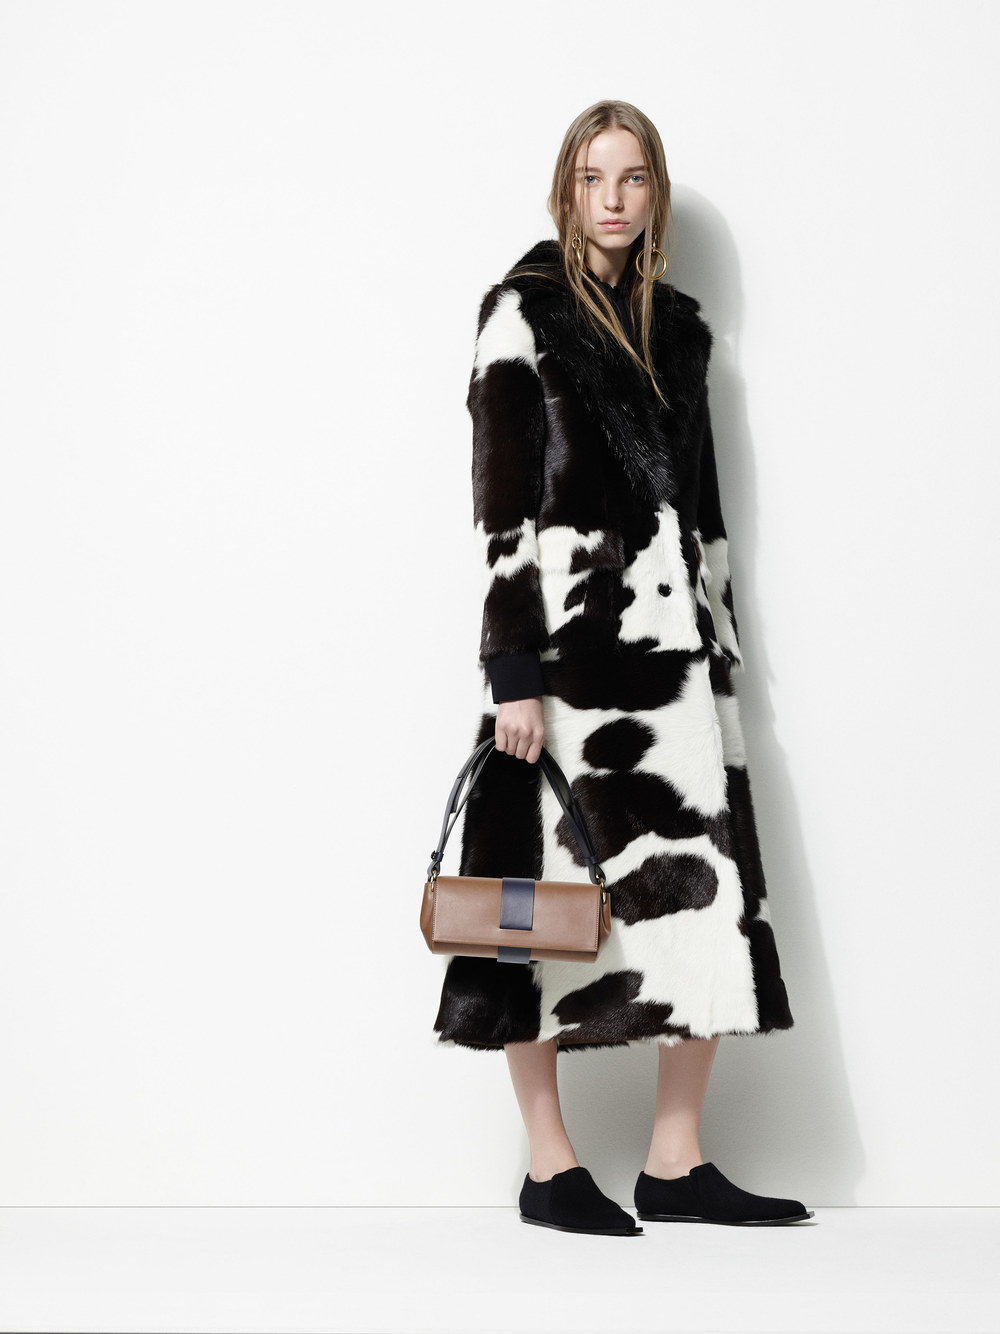 marni-pre-fall-2016-lookbook-04.jpg